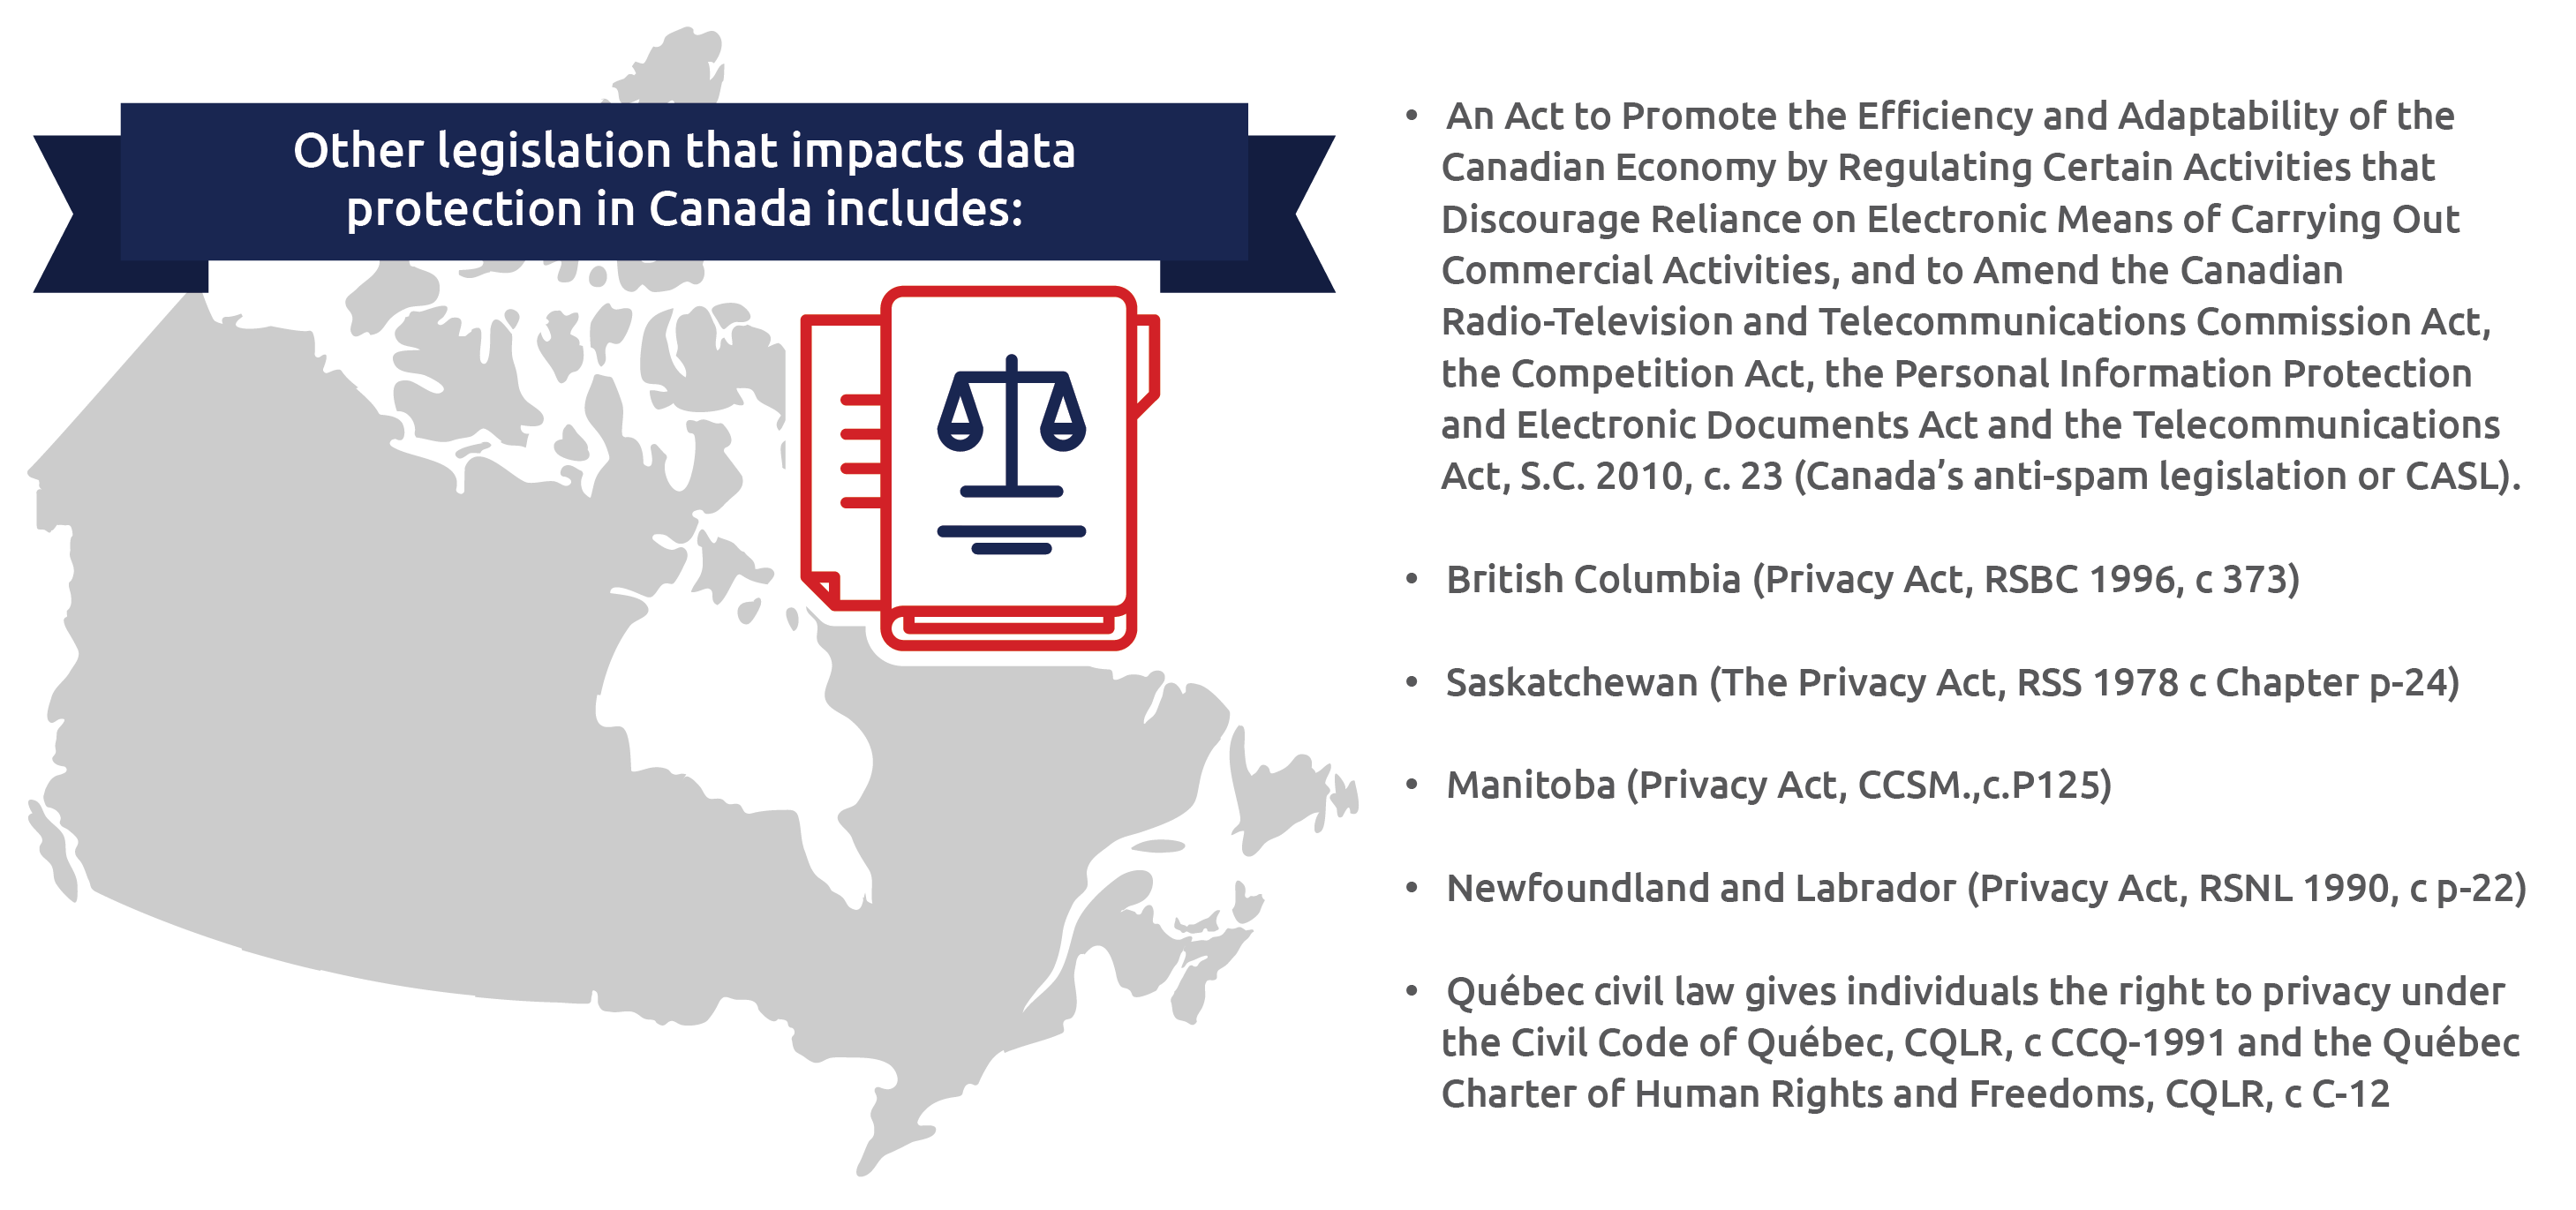 Laws on data protection in Canada